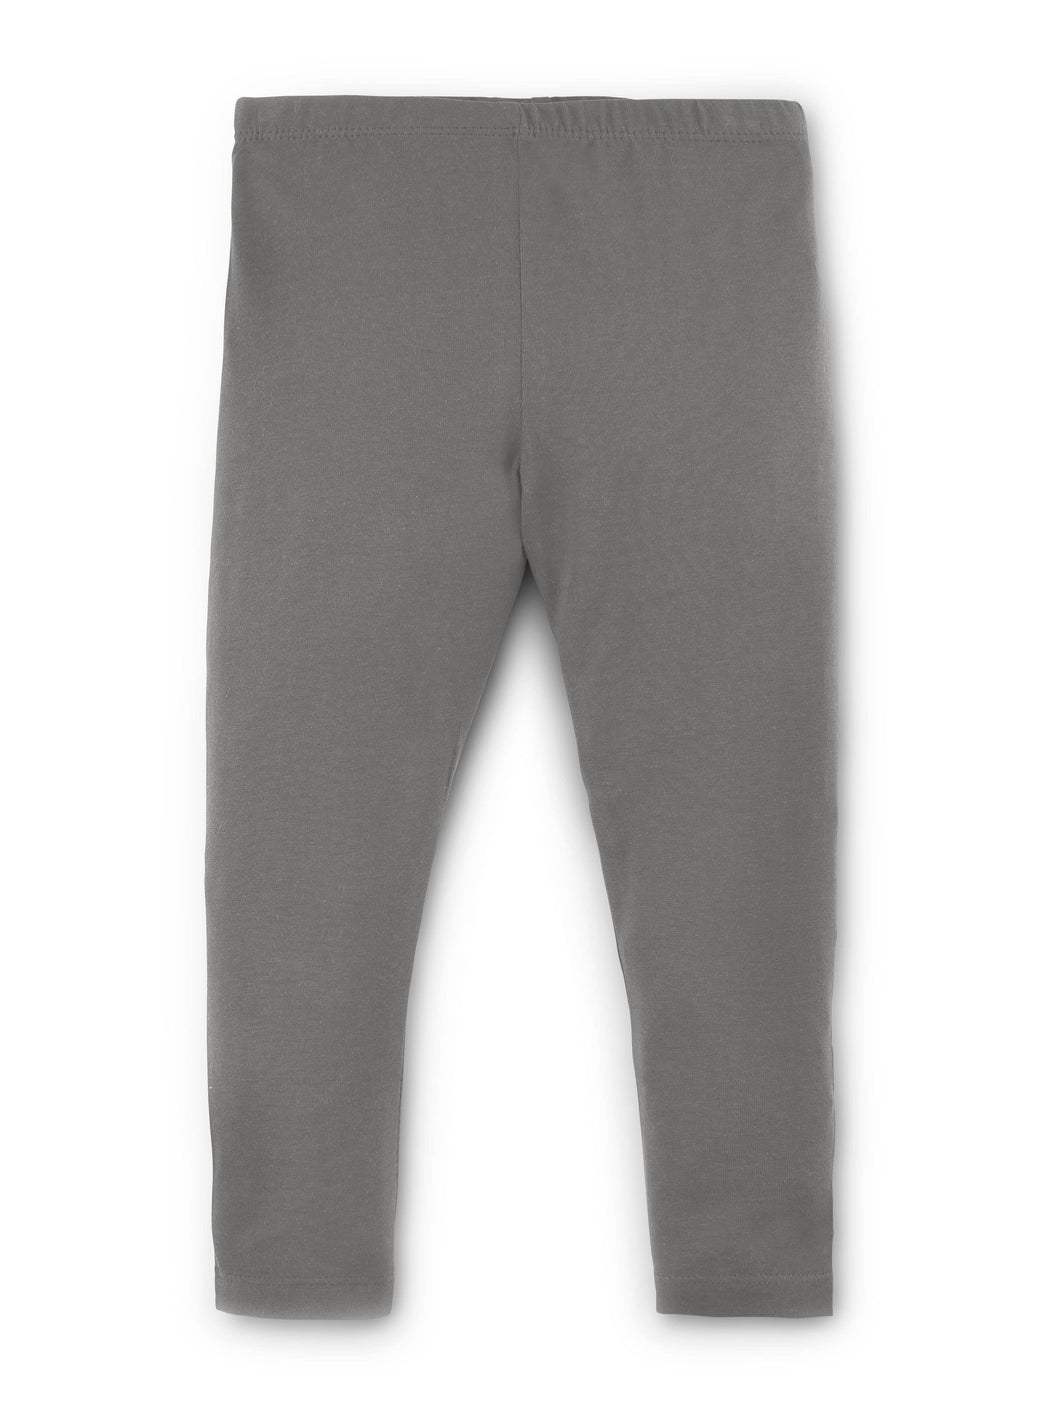 Colored Organics - Classic Leggings - Pewter